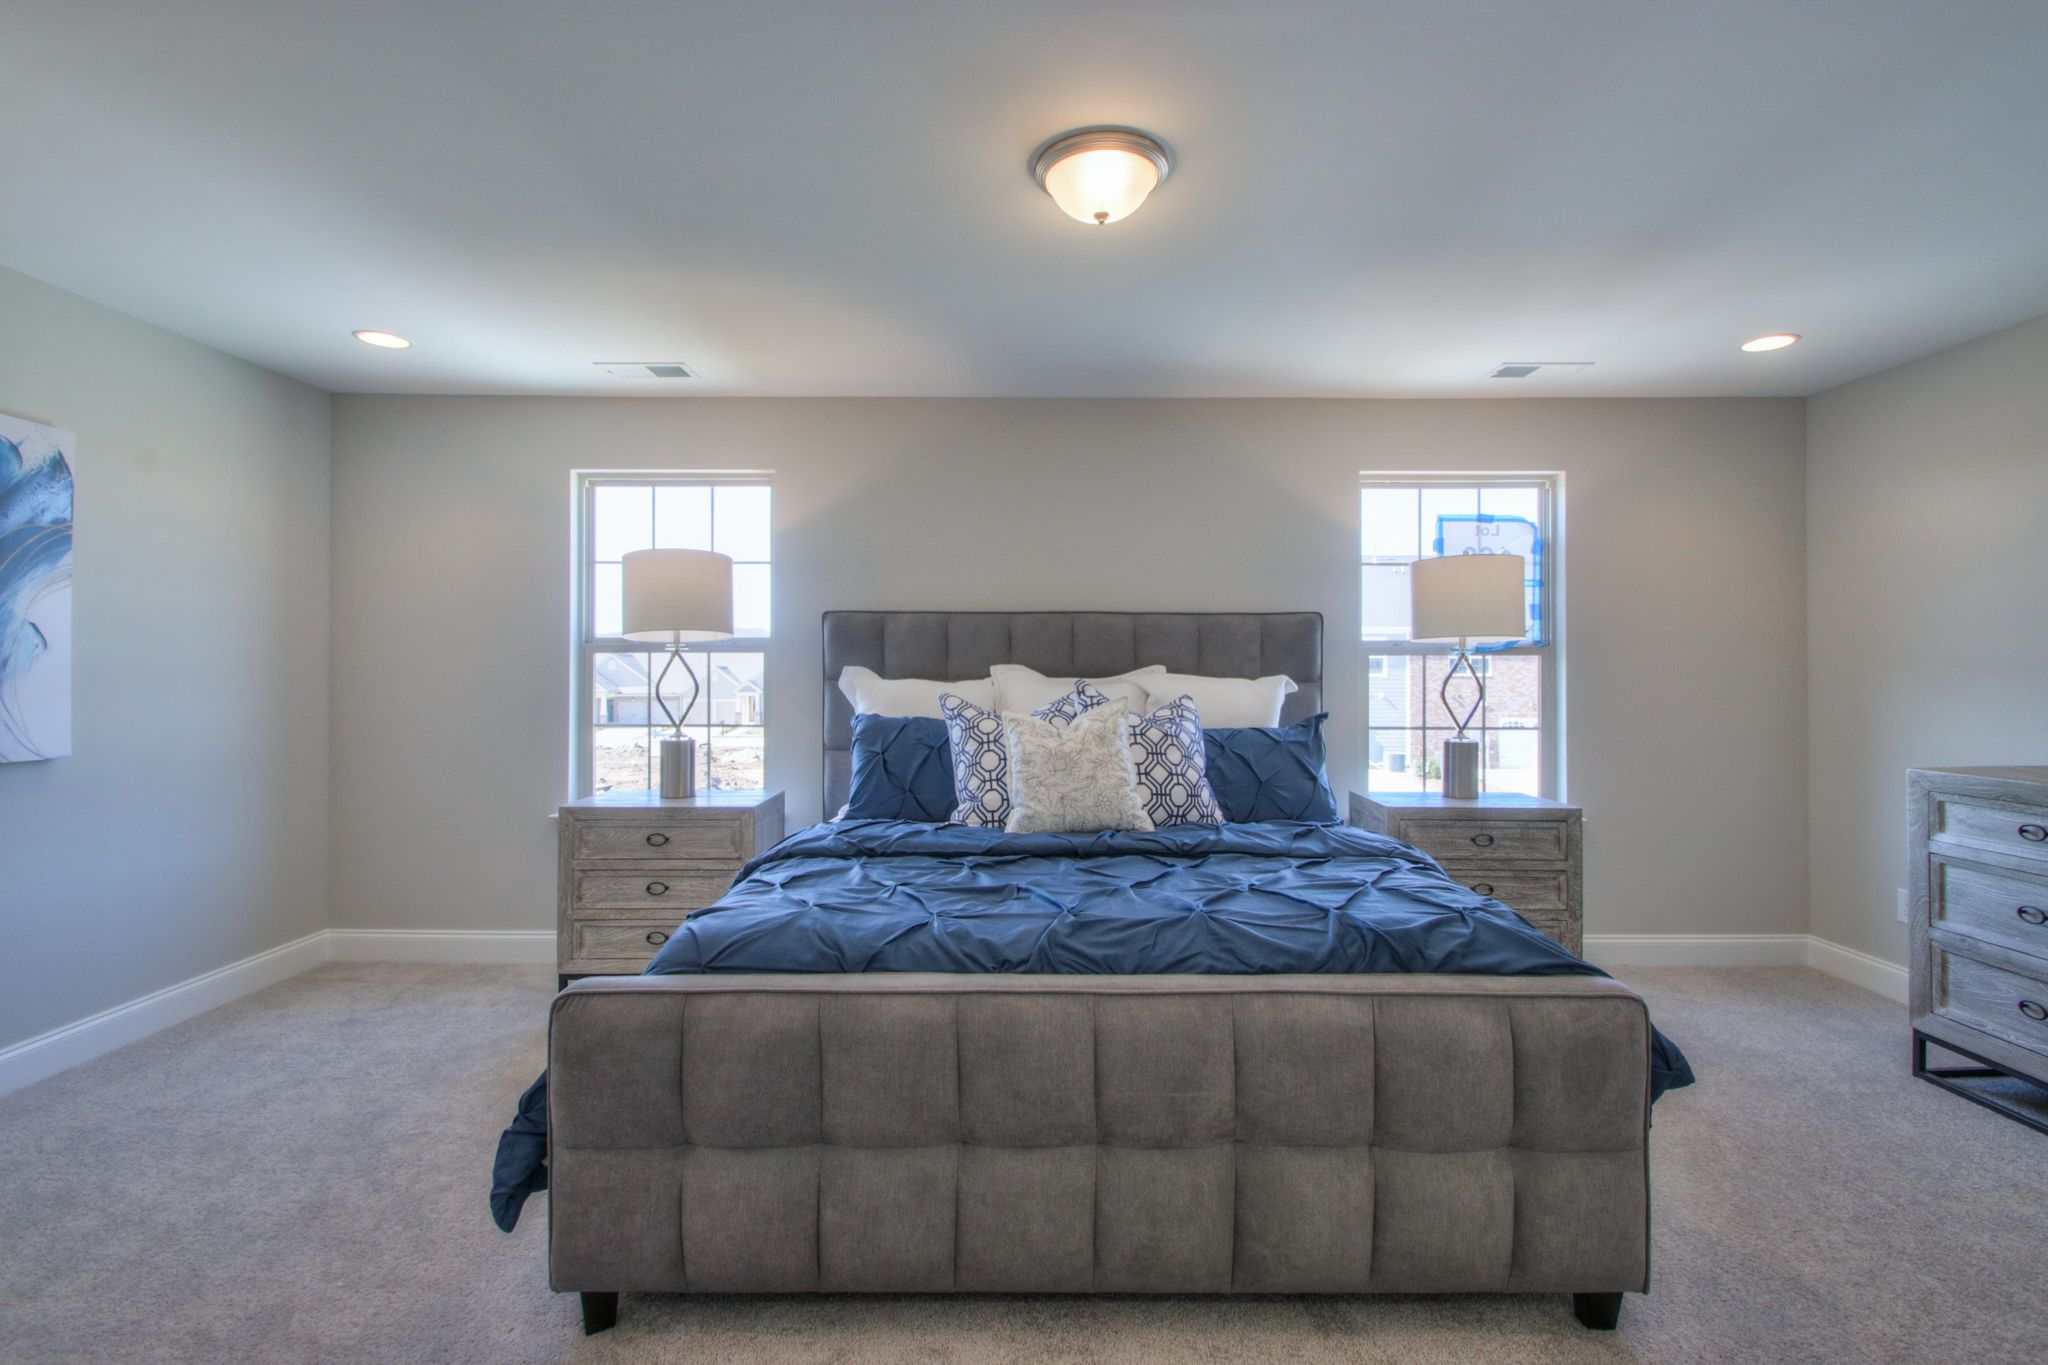 Bedroom featured in The Newport By Goodall Homes in Nashville, TN